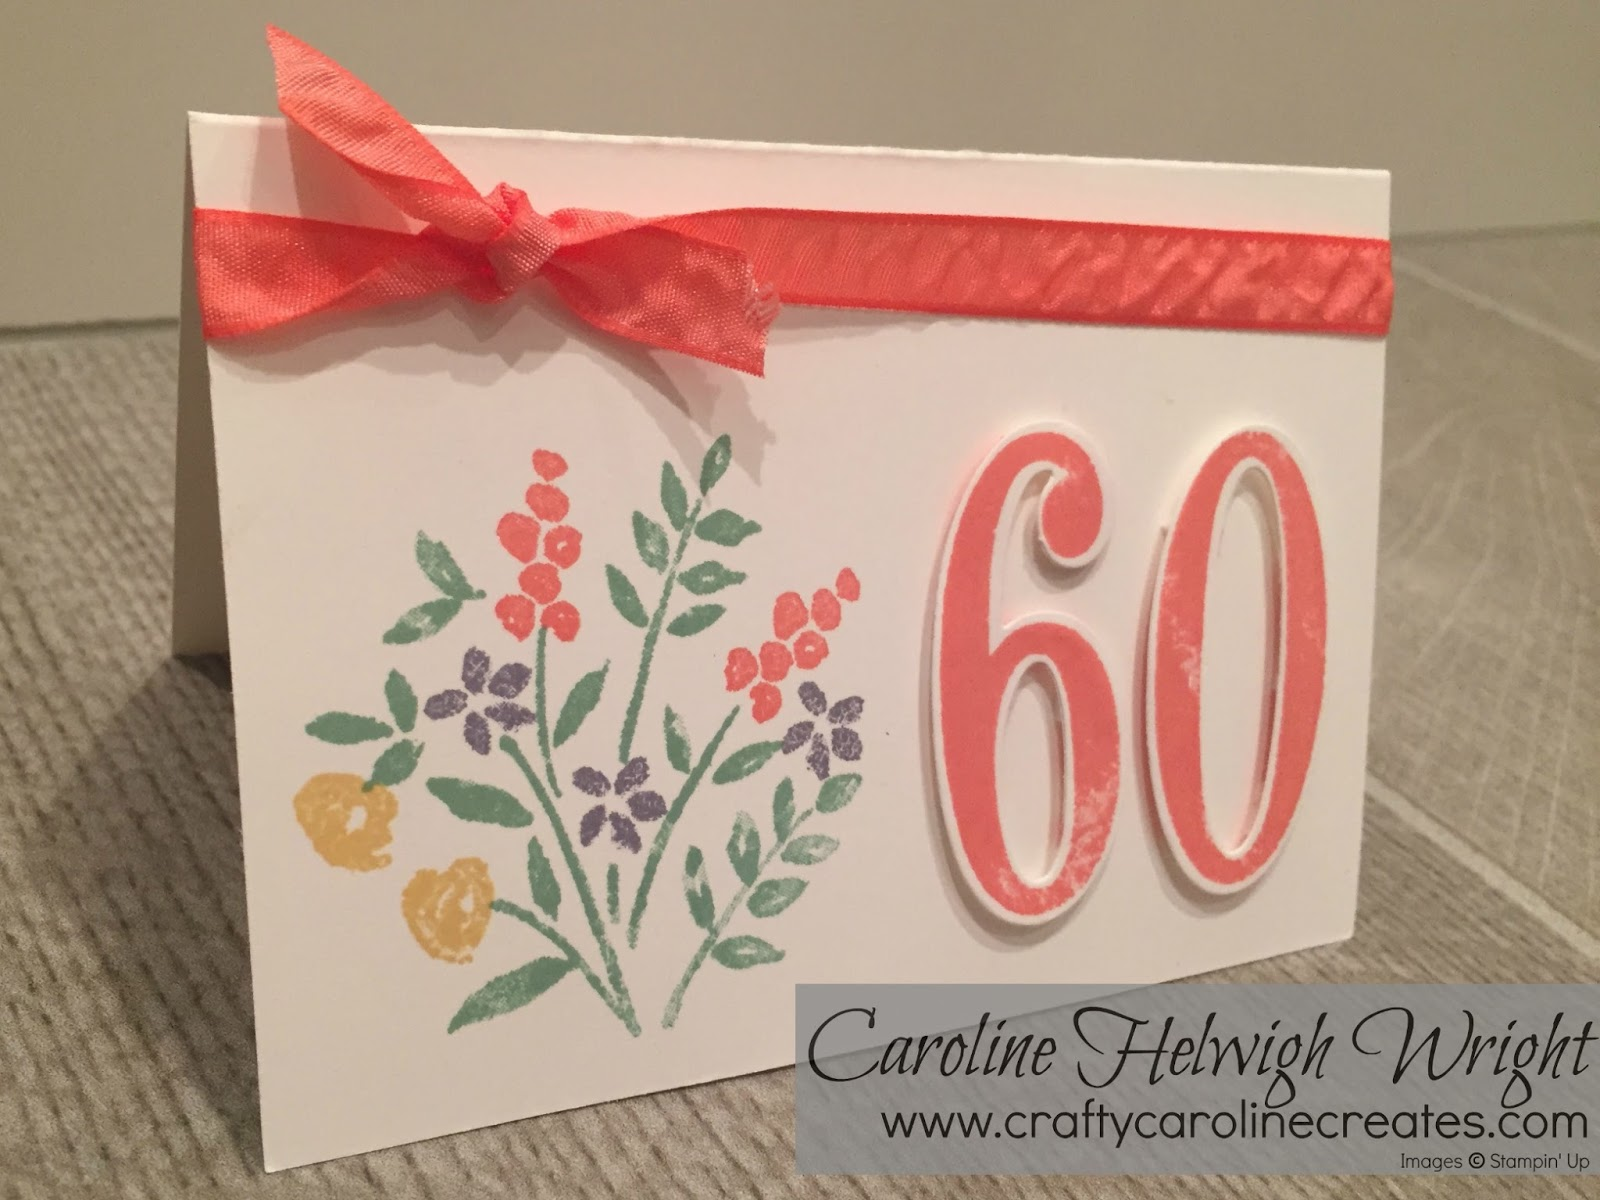 60th Birthday Card Handmade Using Number Of Years By Stampin Up